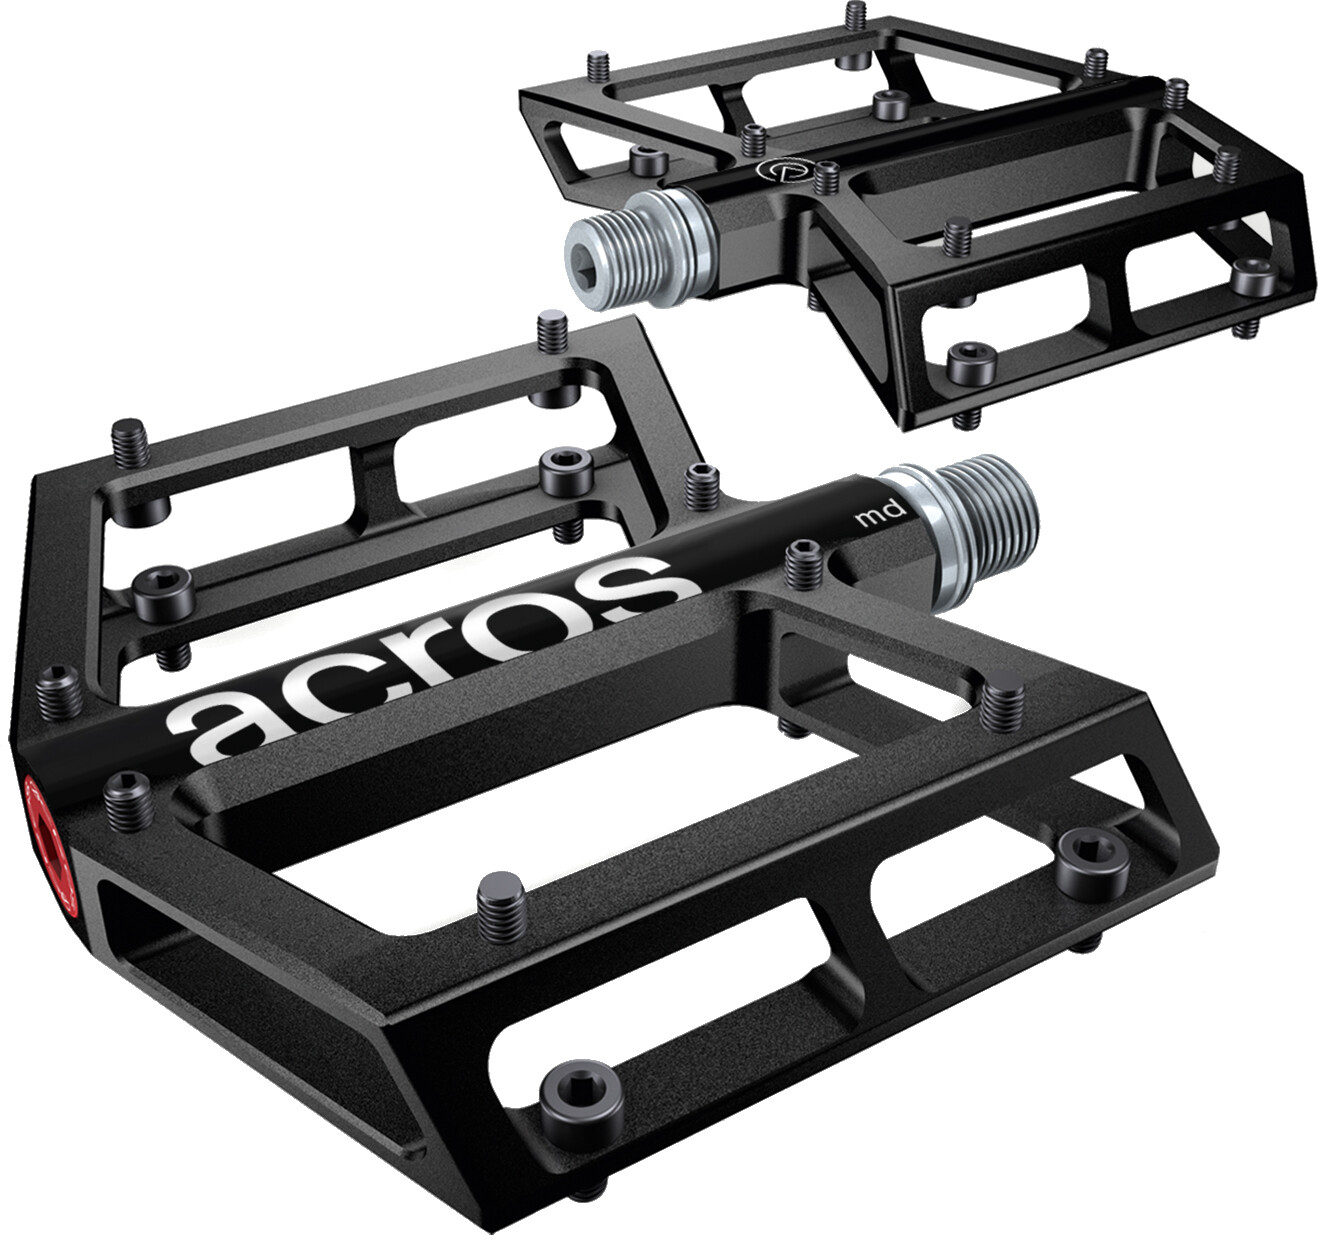 ACROS Acros A-Flat MD Pedals | Pedaler